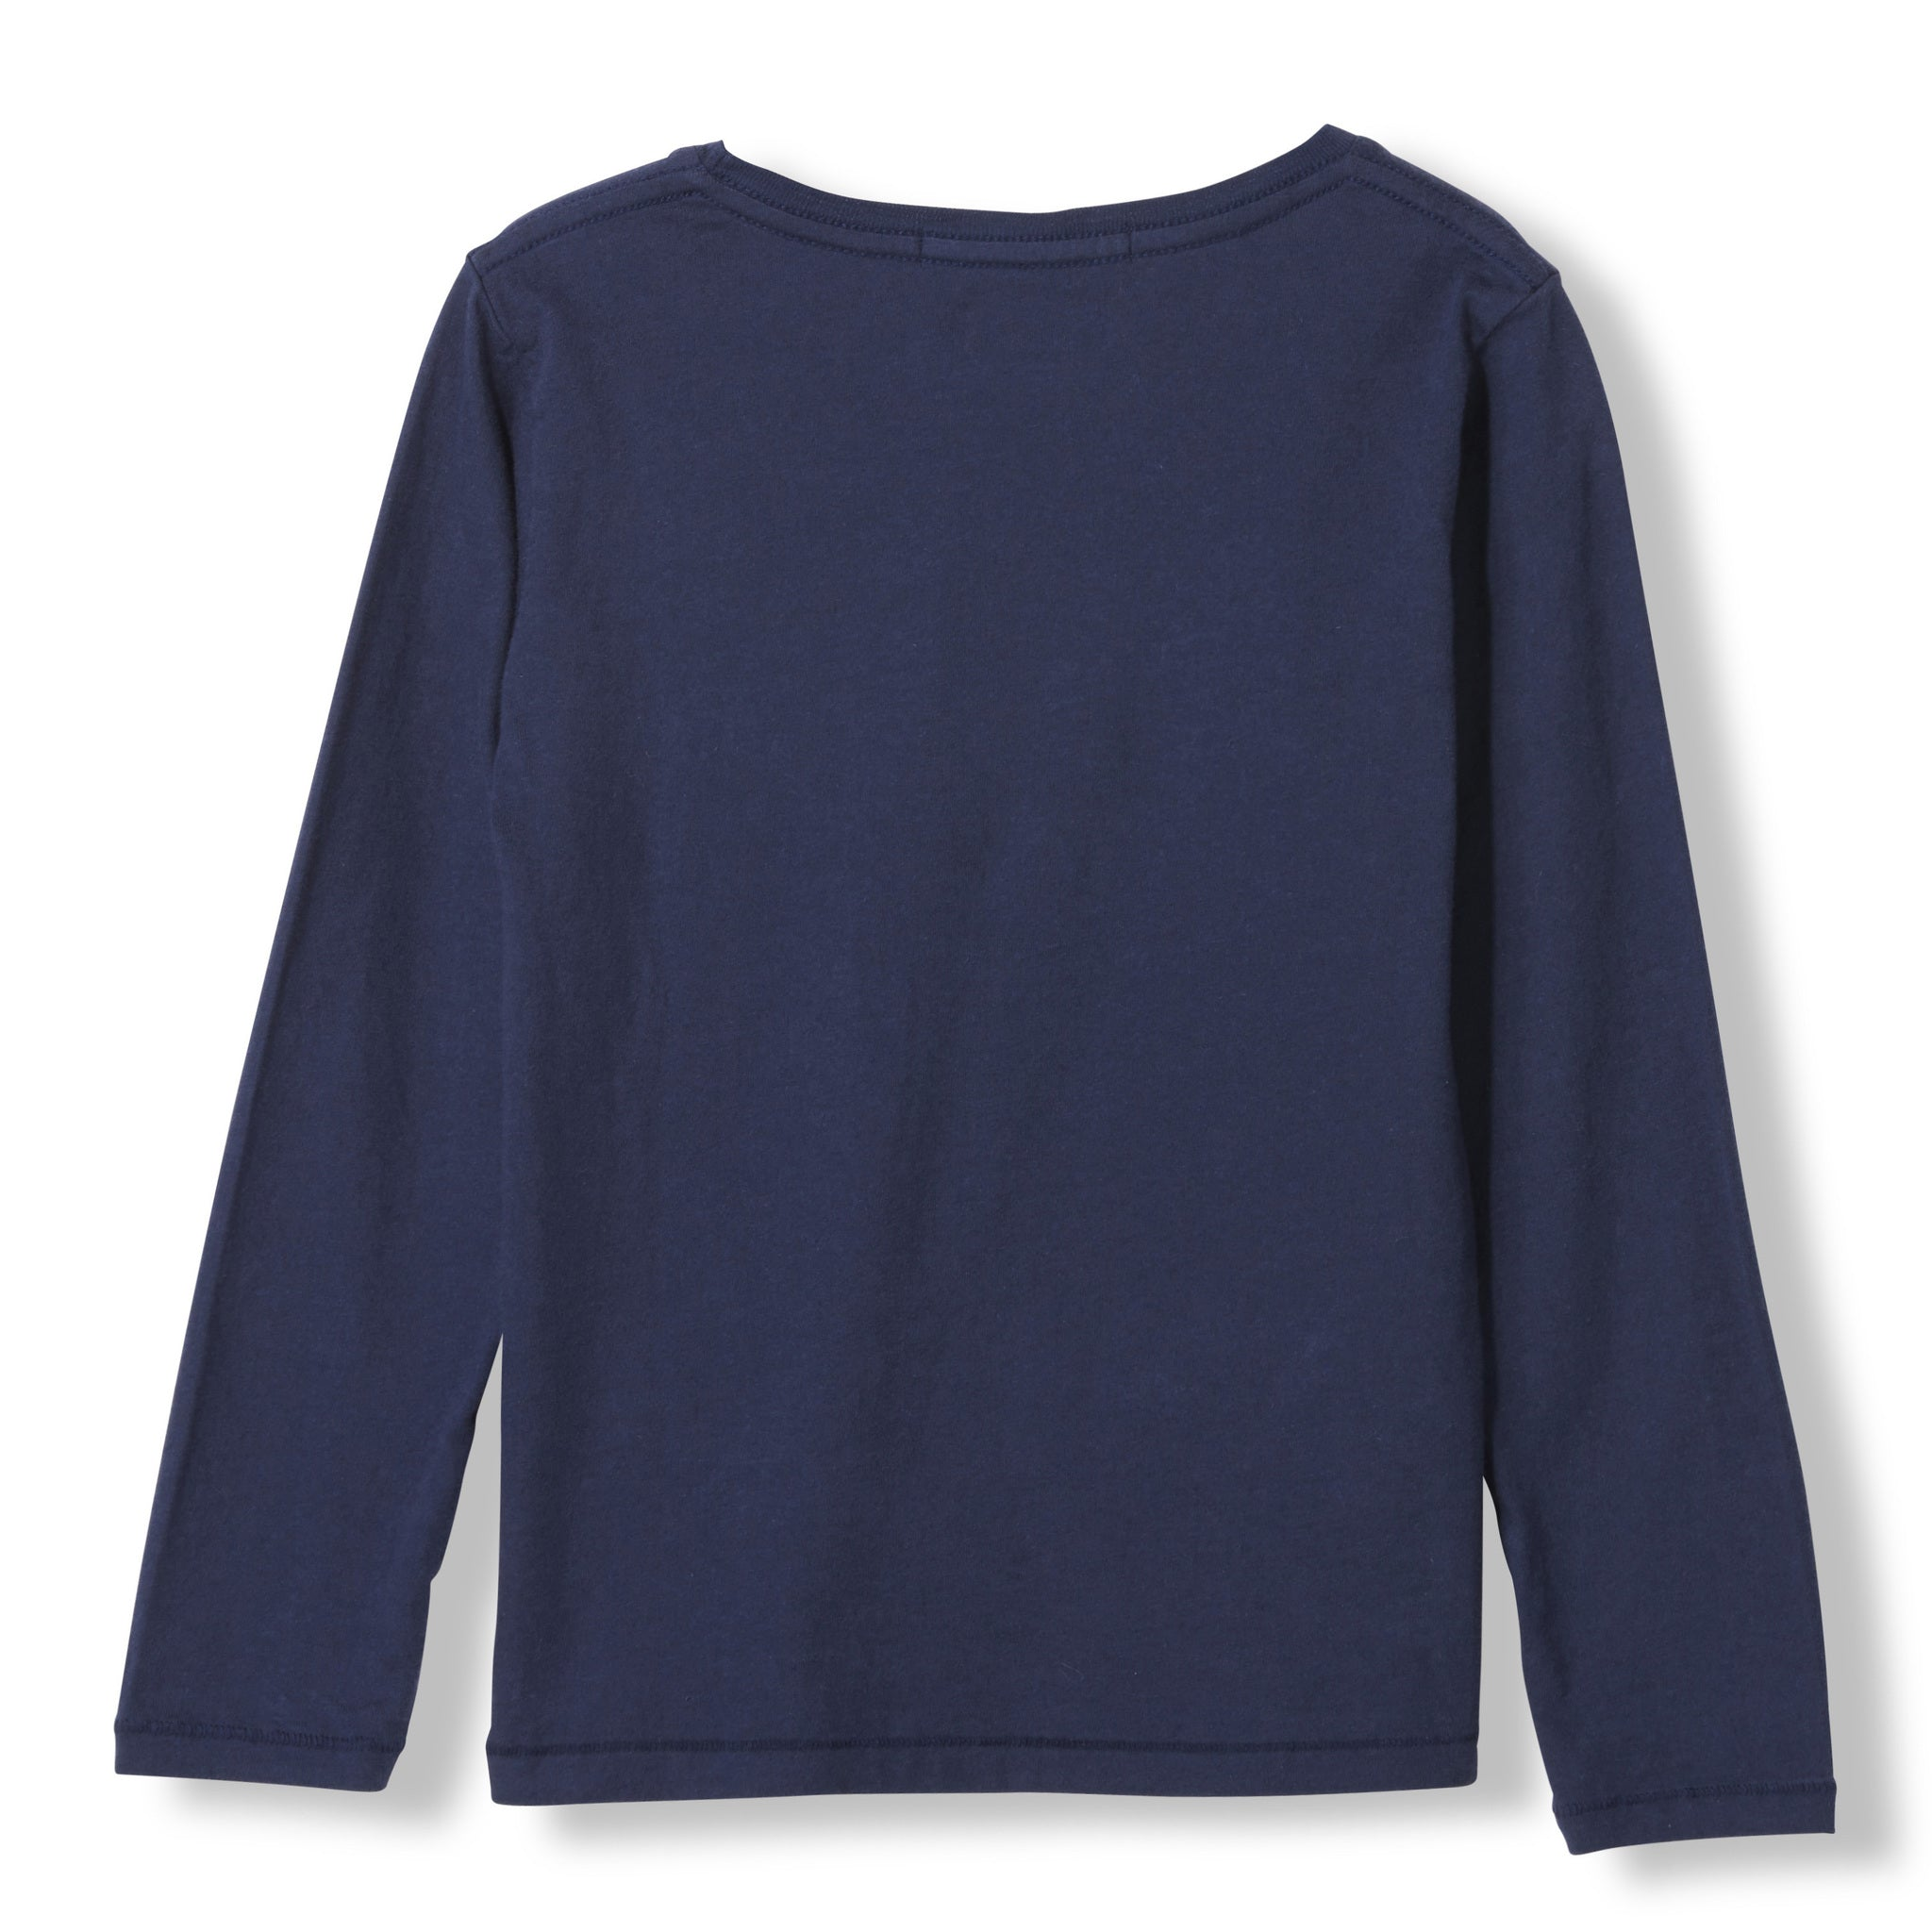 LONGJOHN Night Blue Free Skate -  Knitted Long Sleeve Jersey T-shirt 2